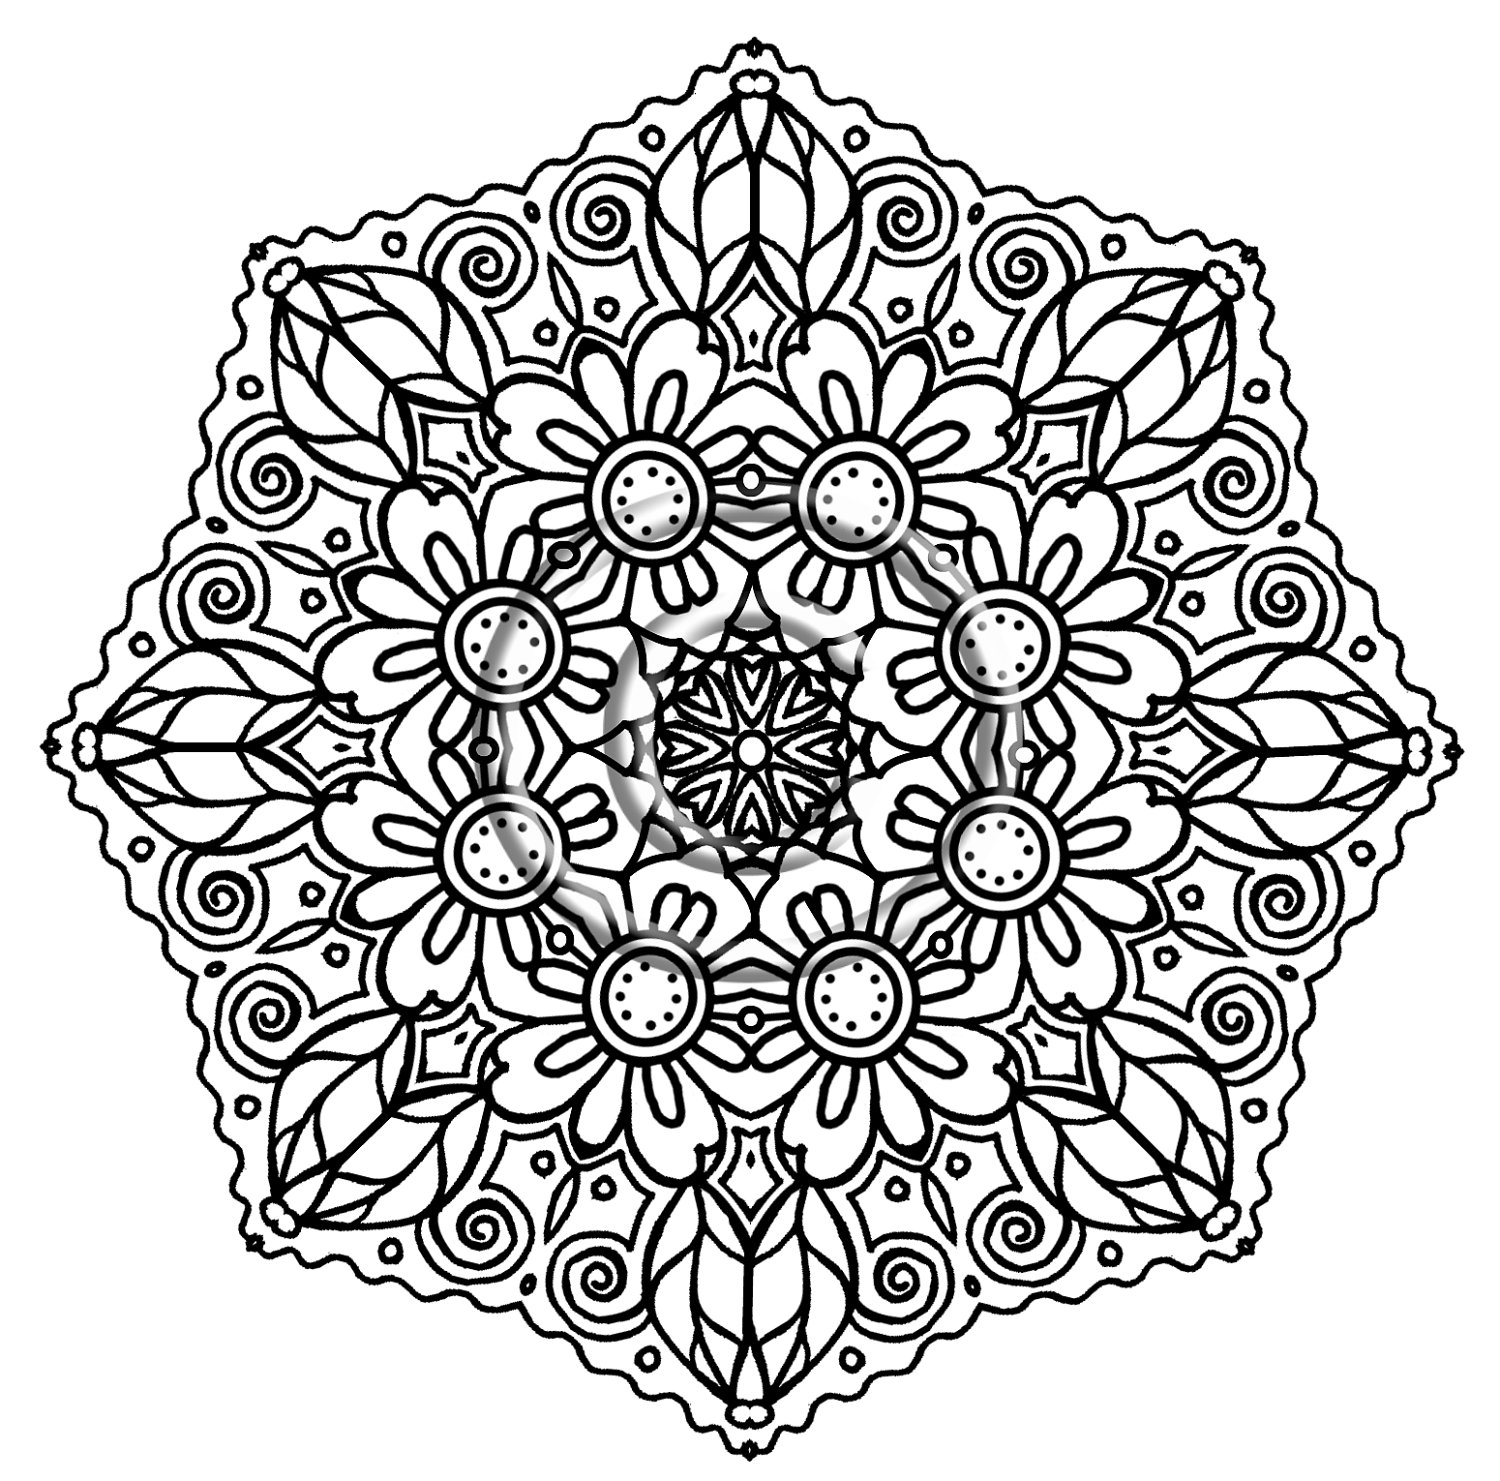 flower printable coloring sheets detailed flower coloring pages to download and print for free sheets flower coloring printable 1 1